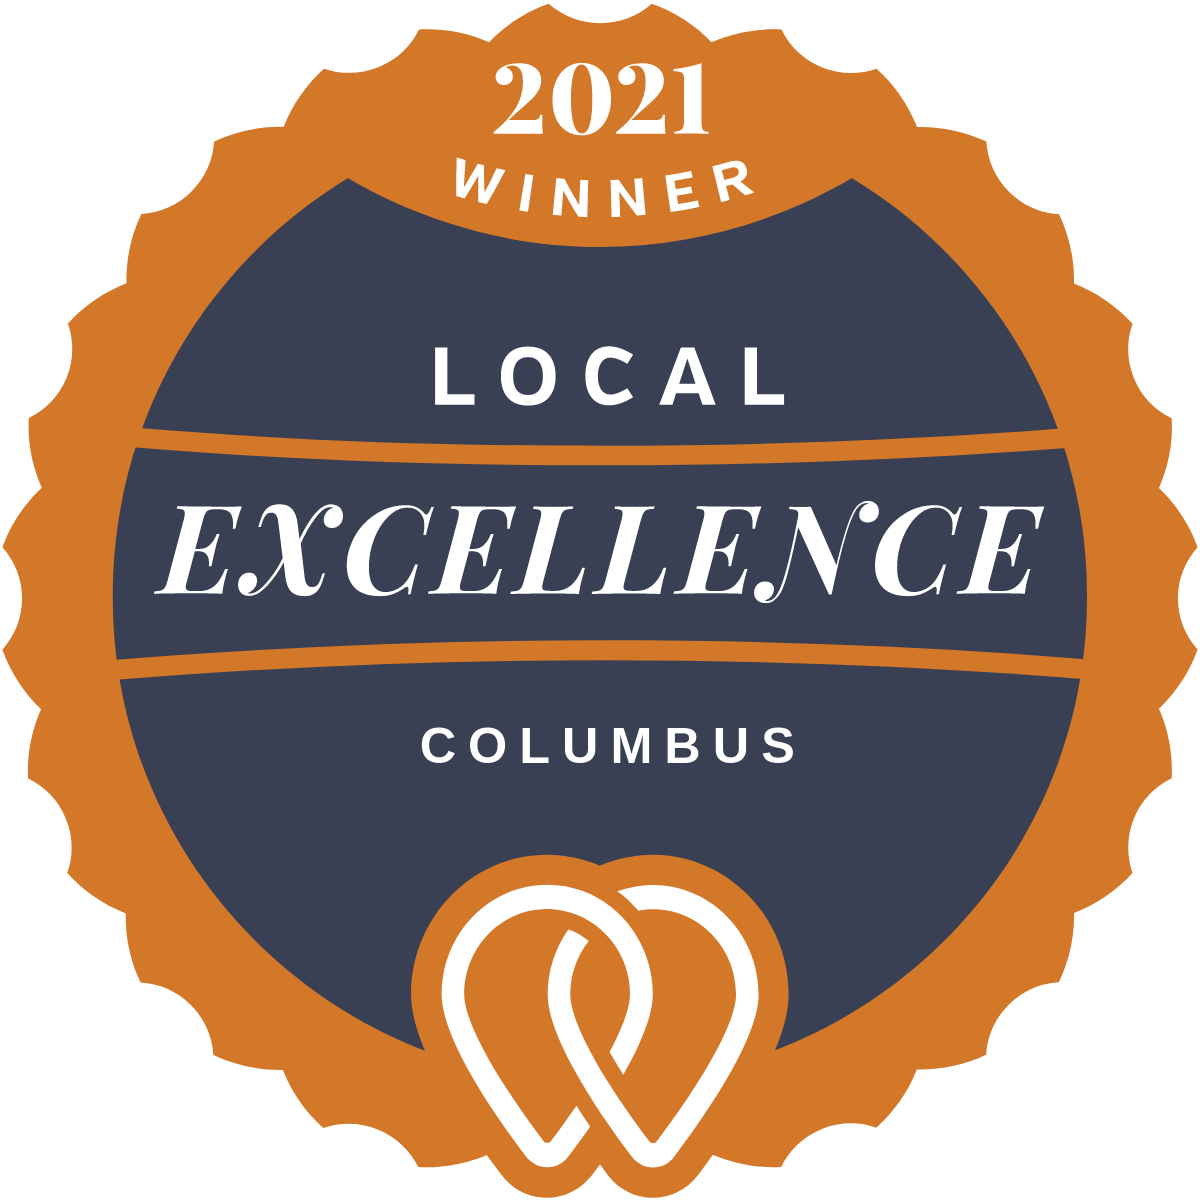 2021 Local Excellence Winner in Columbus, OH